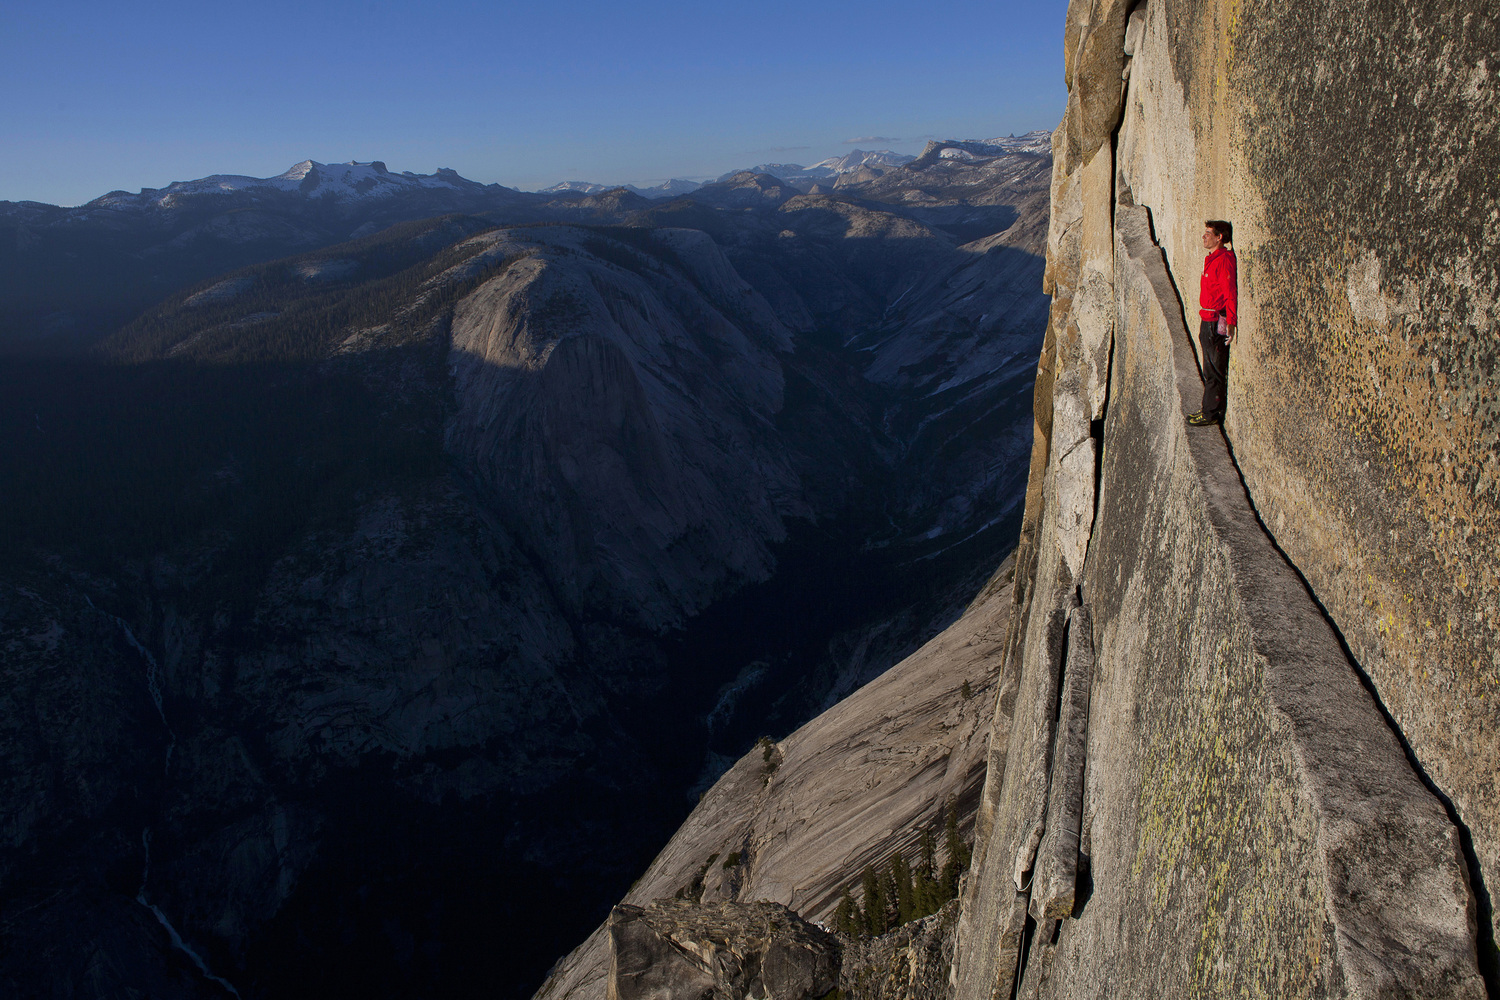 Image: Alex Honnold reenacting his rope-less free climb of the 2,500 ft. Northwest Face of Half Dome (5.12), Yosemite National Park, California, USA.  Alex's ascent is arguably the hardest free solo done to date in Yosemite.